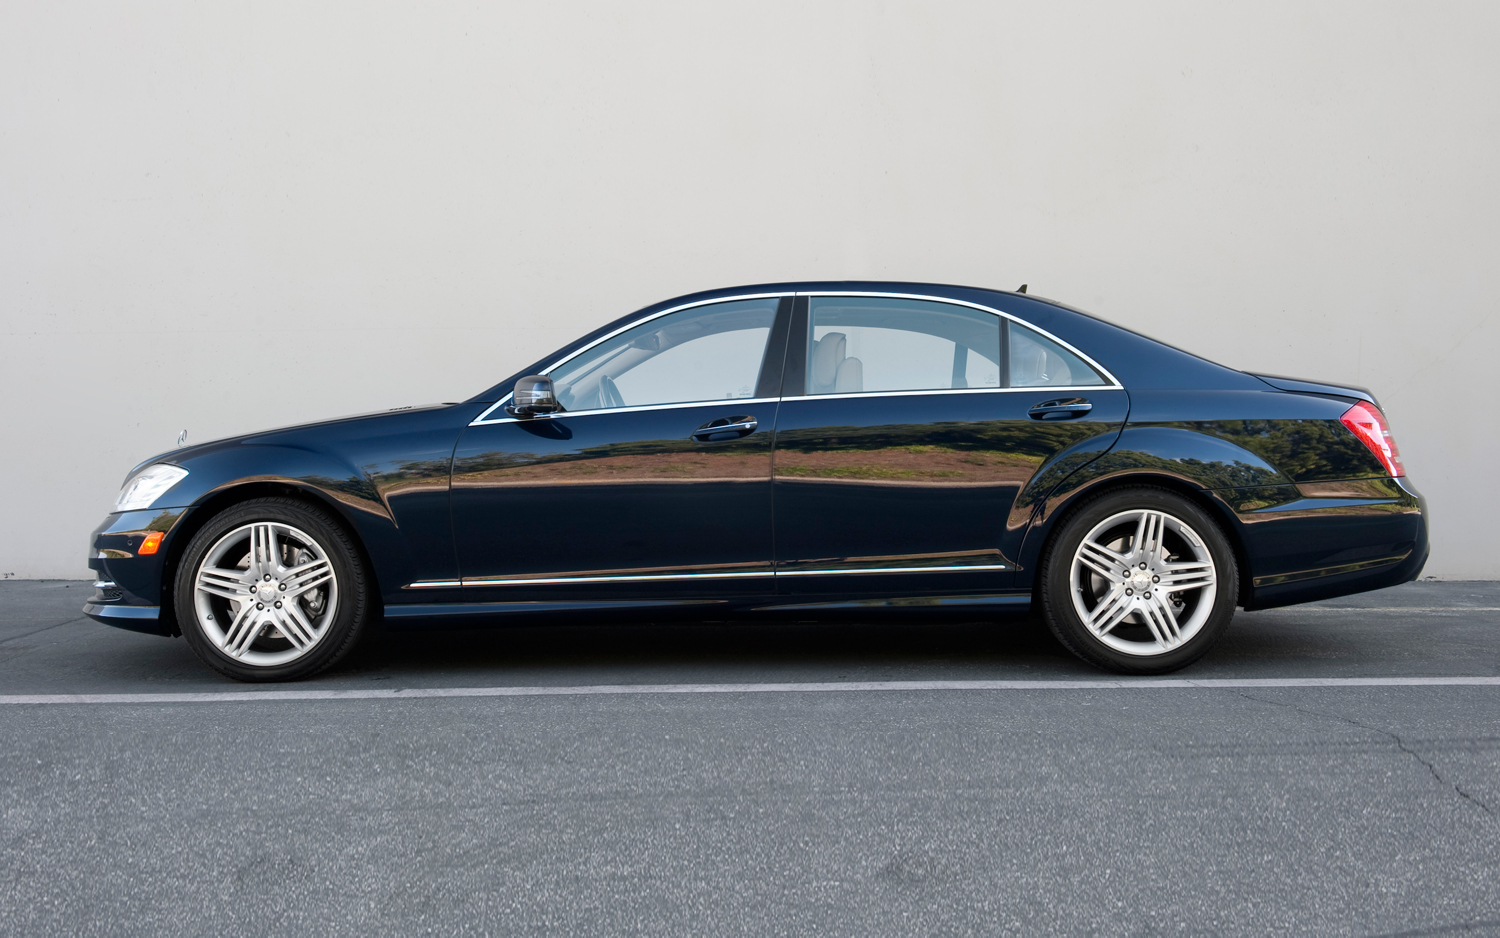 Mercedes-benz s400 photo - 1